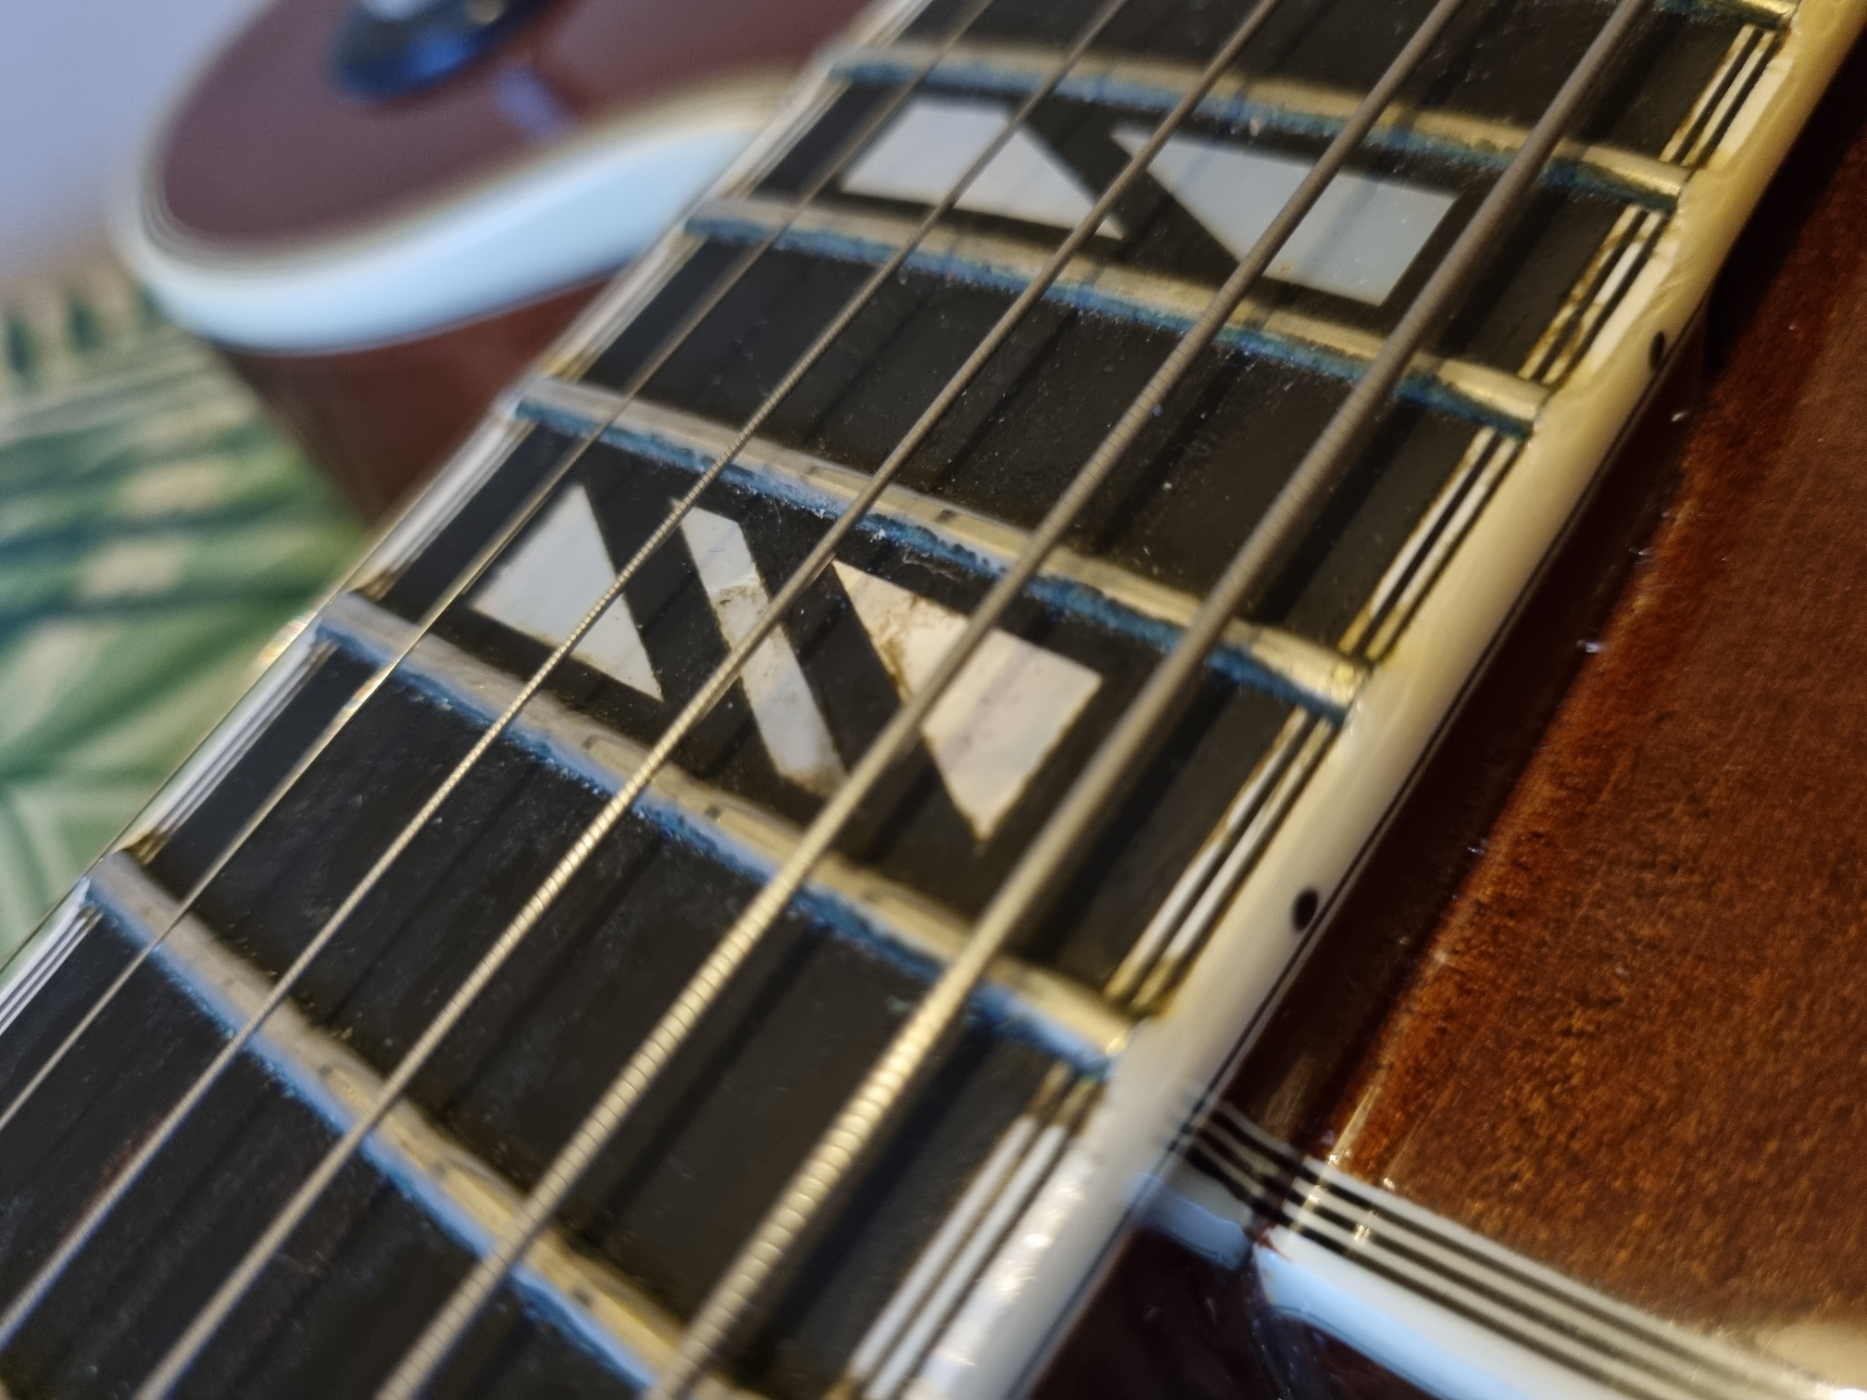 Fretboard pitting - What's the deal?-20210913_190751-jpg